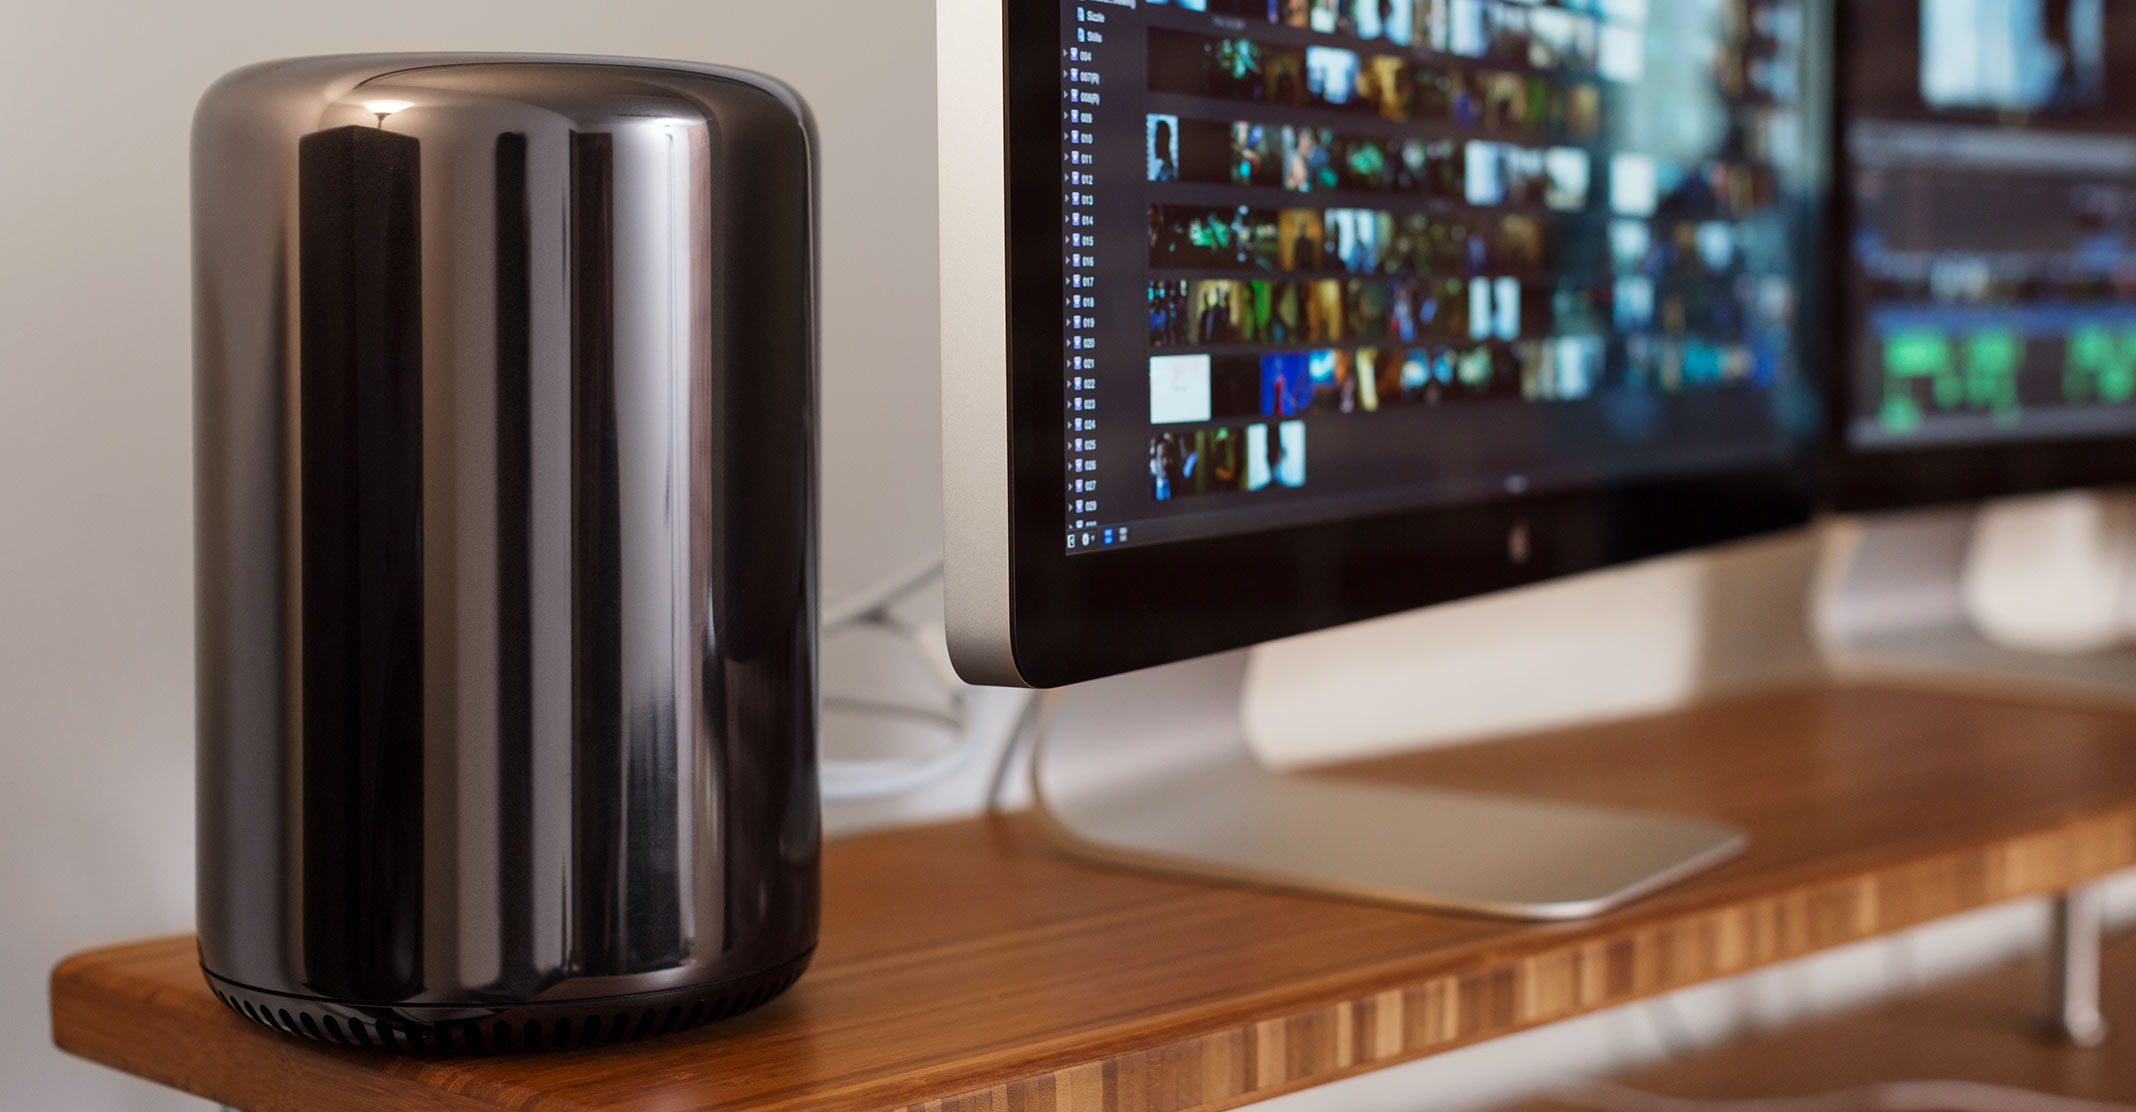 """Apple's cylindrical Mac Pro, which brought some style to the boxy world of workstations, is shown here running Final Cut Pro X to edit the movie """"Focus."""""""